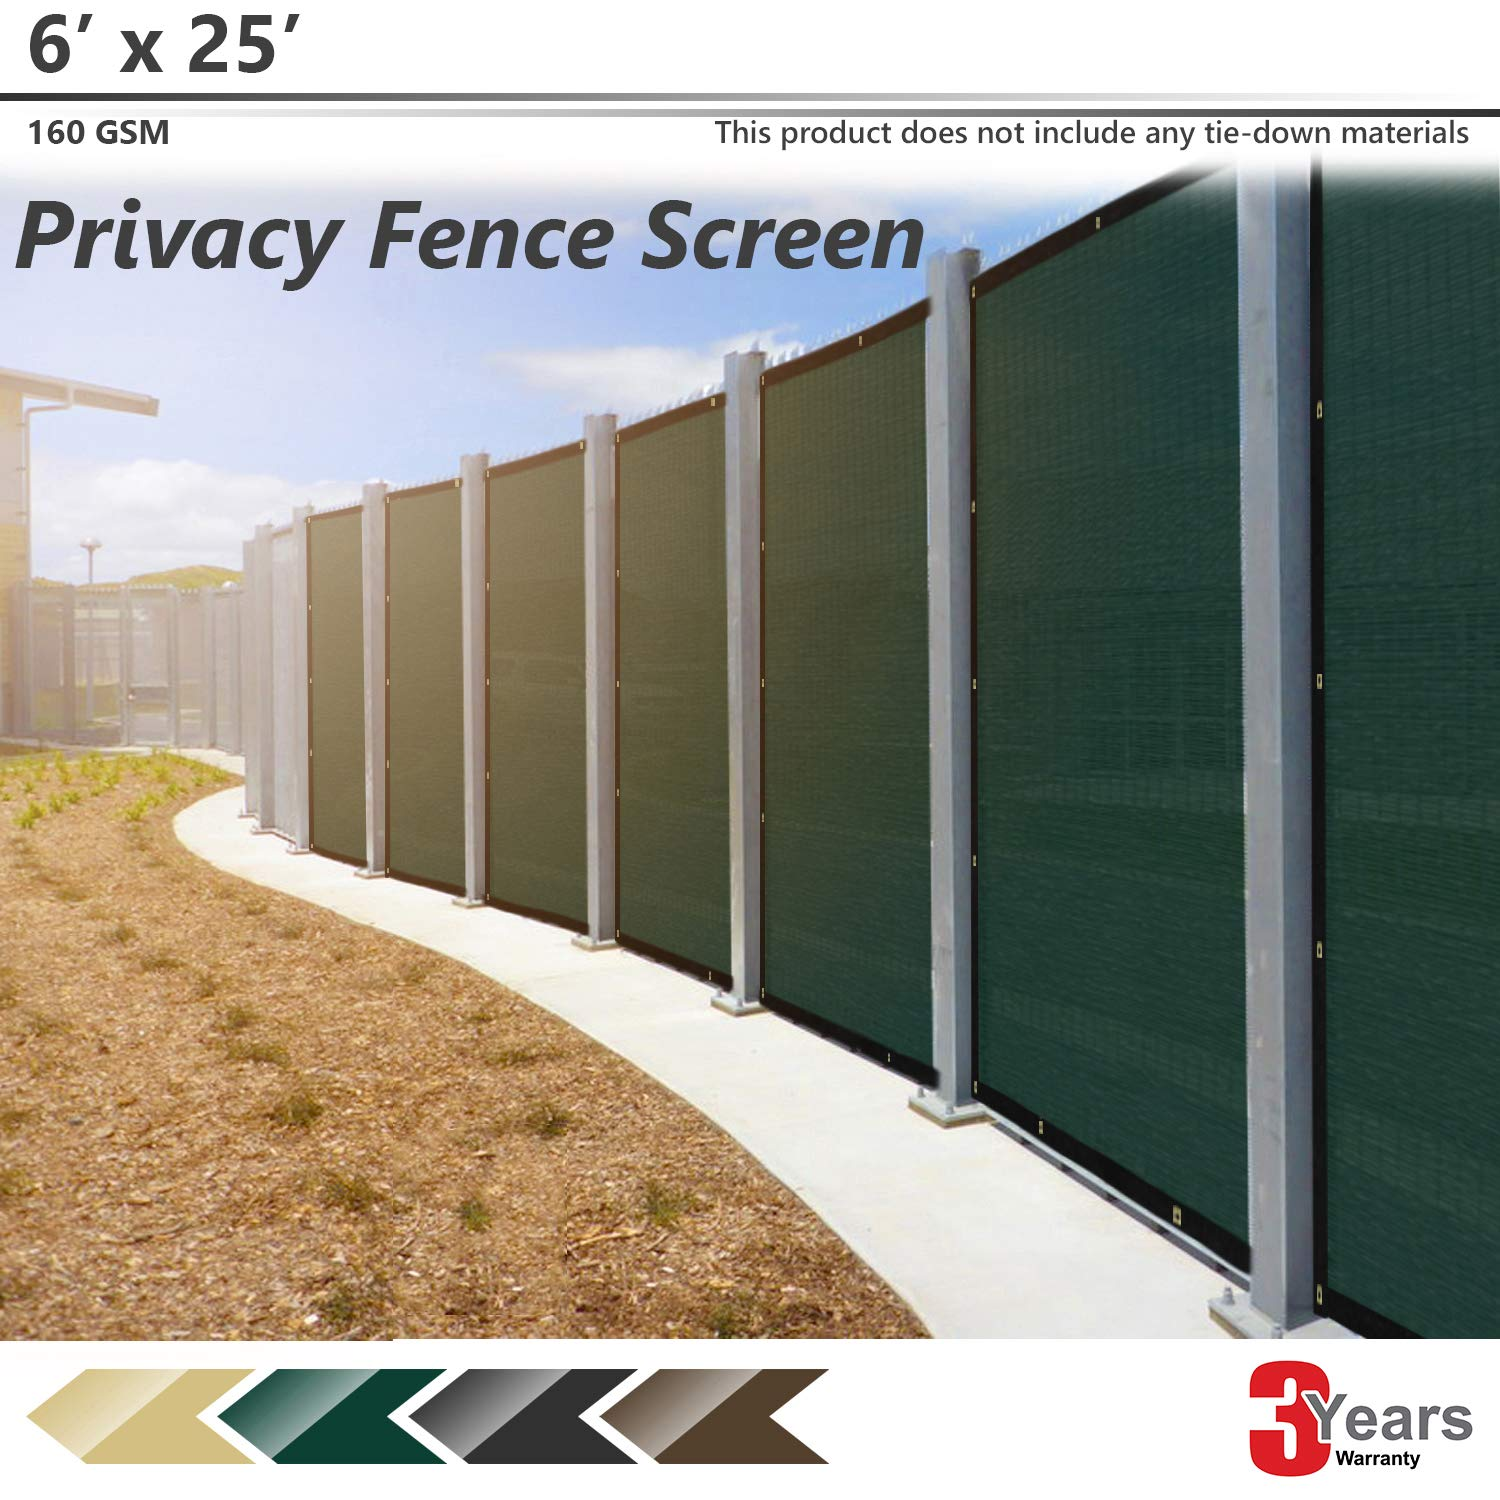 3 Years Warranty BOUYA Black Privacy Fence Screen 4 x 25 Heavy Duty for Chain-Link Fence Privacy Screen Commercial Outdoor Shade Windscreen Mesh Fabric with Brass Gromment 160 GSM 88/% Blockage UV